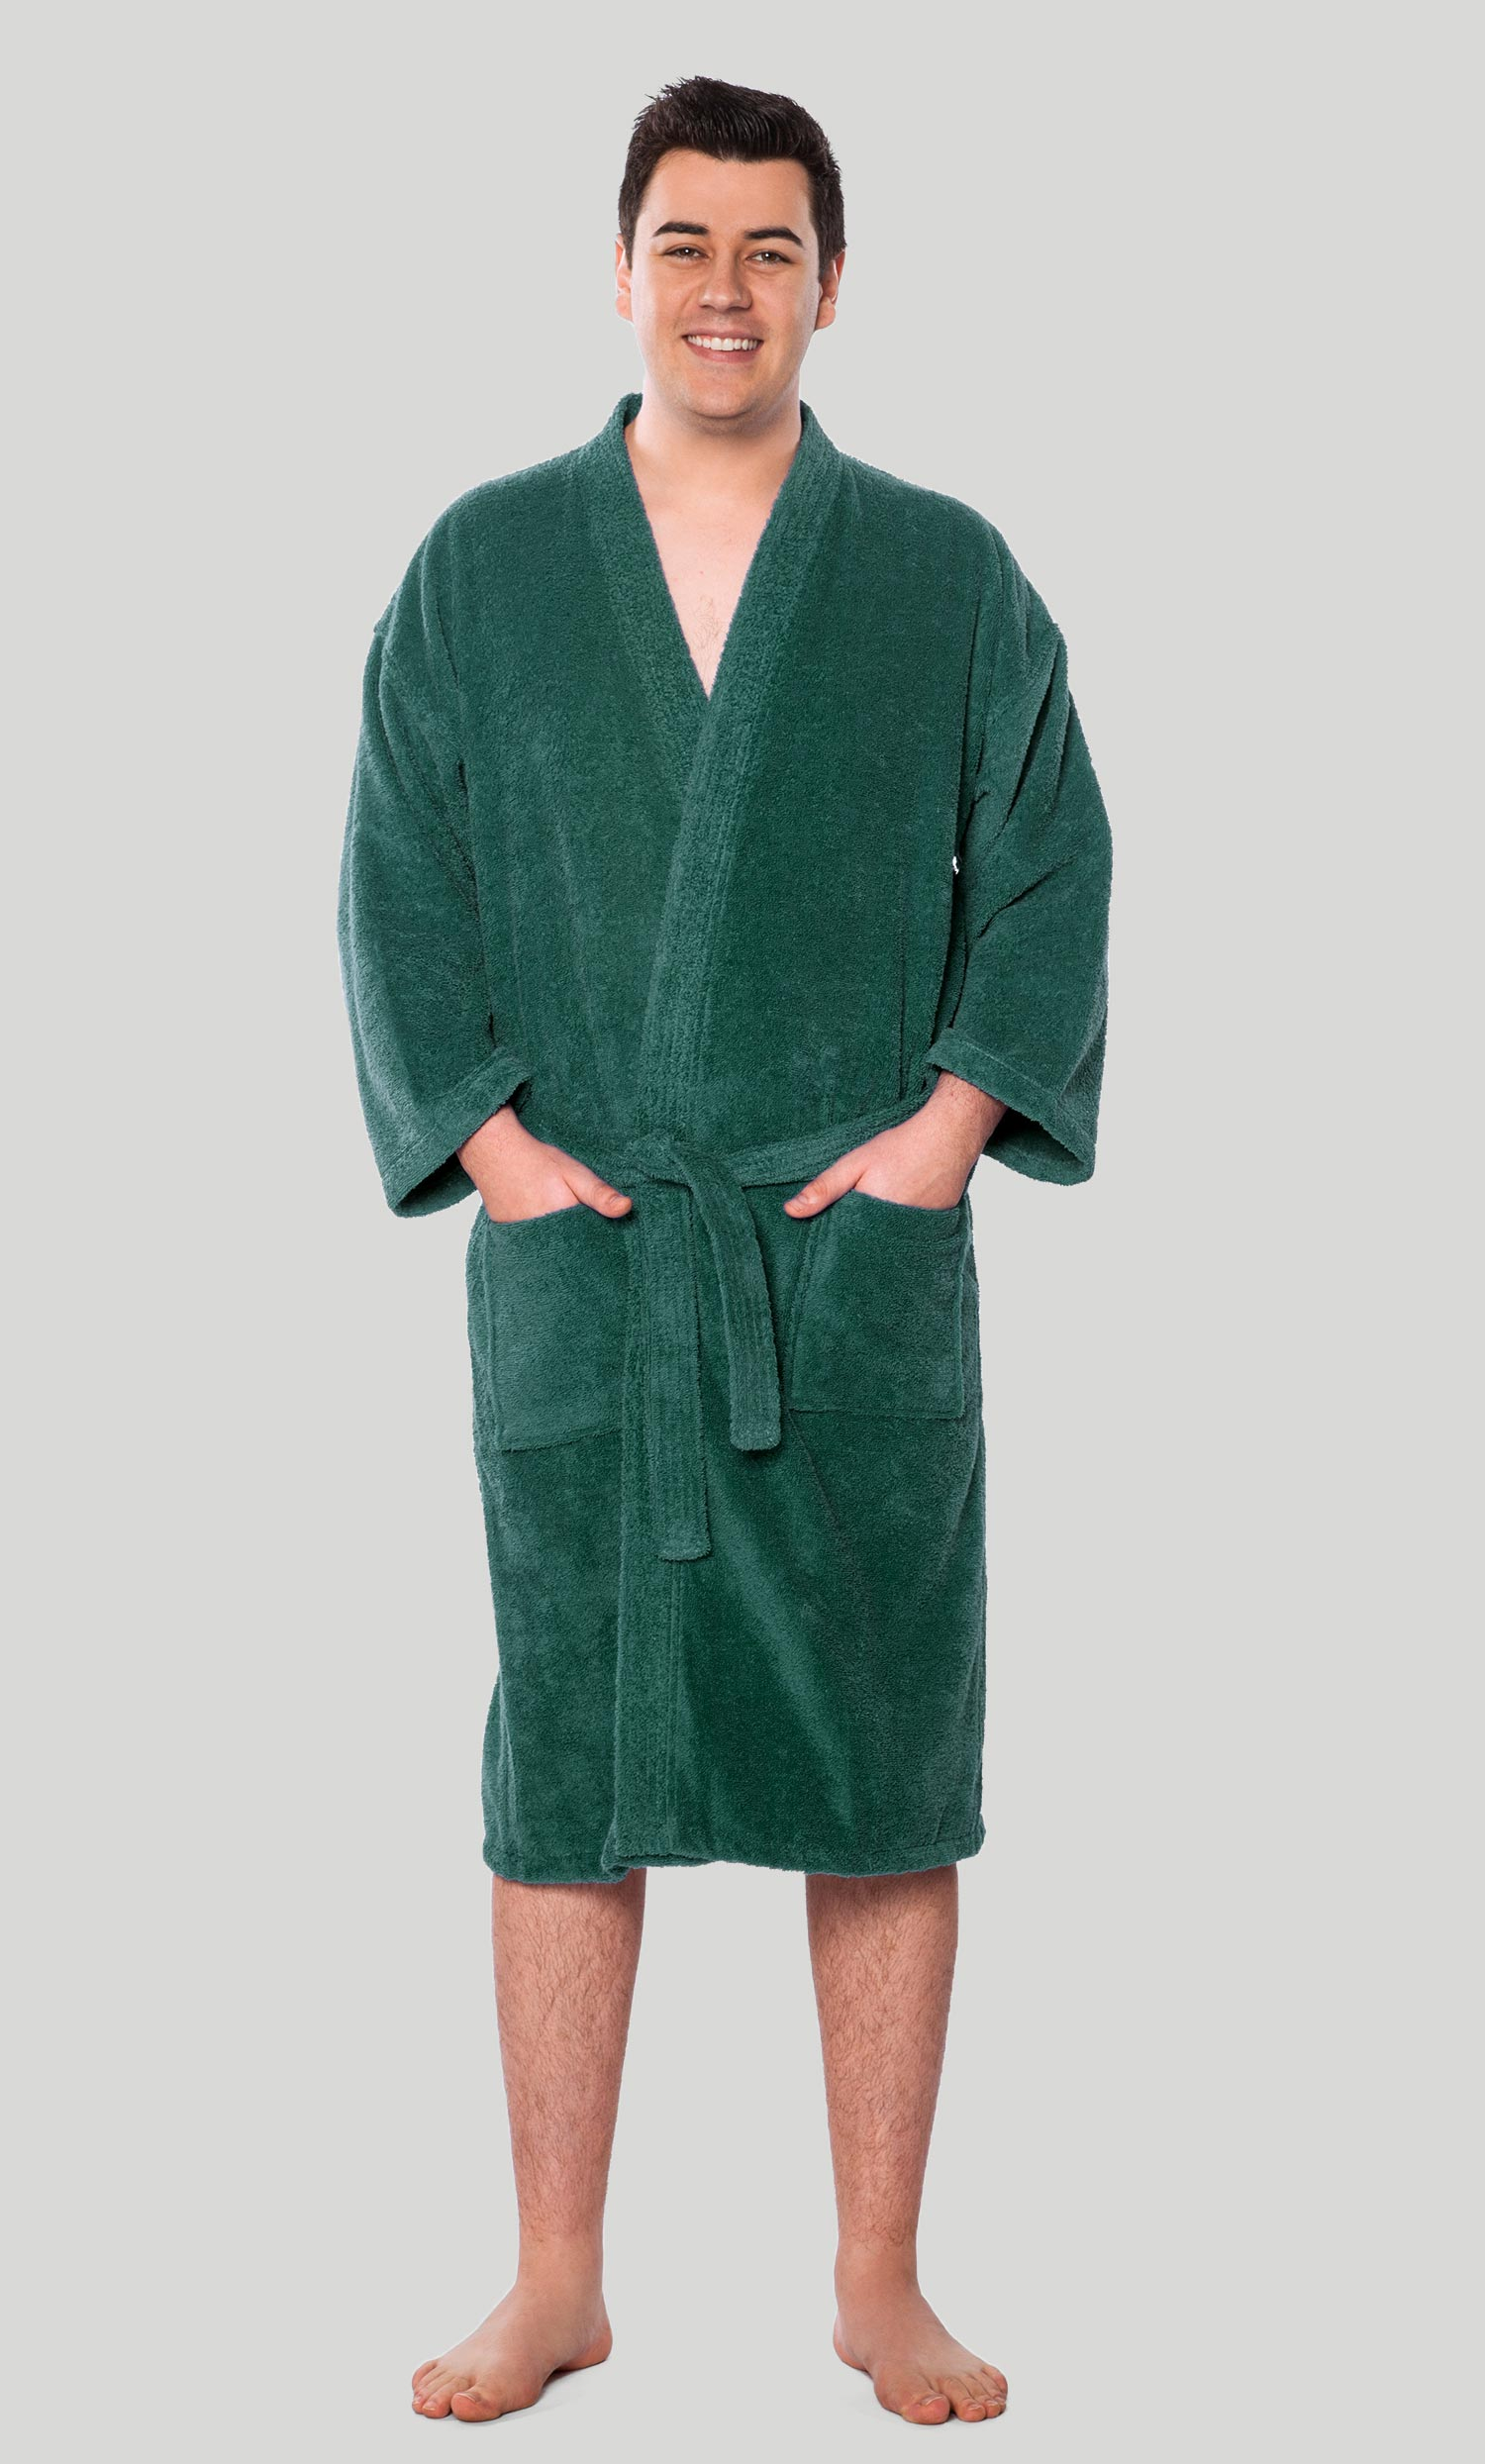 Economy Bathrobes    Terry Kimono Bathrobes    100% Turkish Cotton Forest Green  Terry Kimono Bathrobe - Wholesale bathrobes 215ca3513